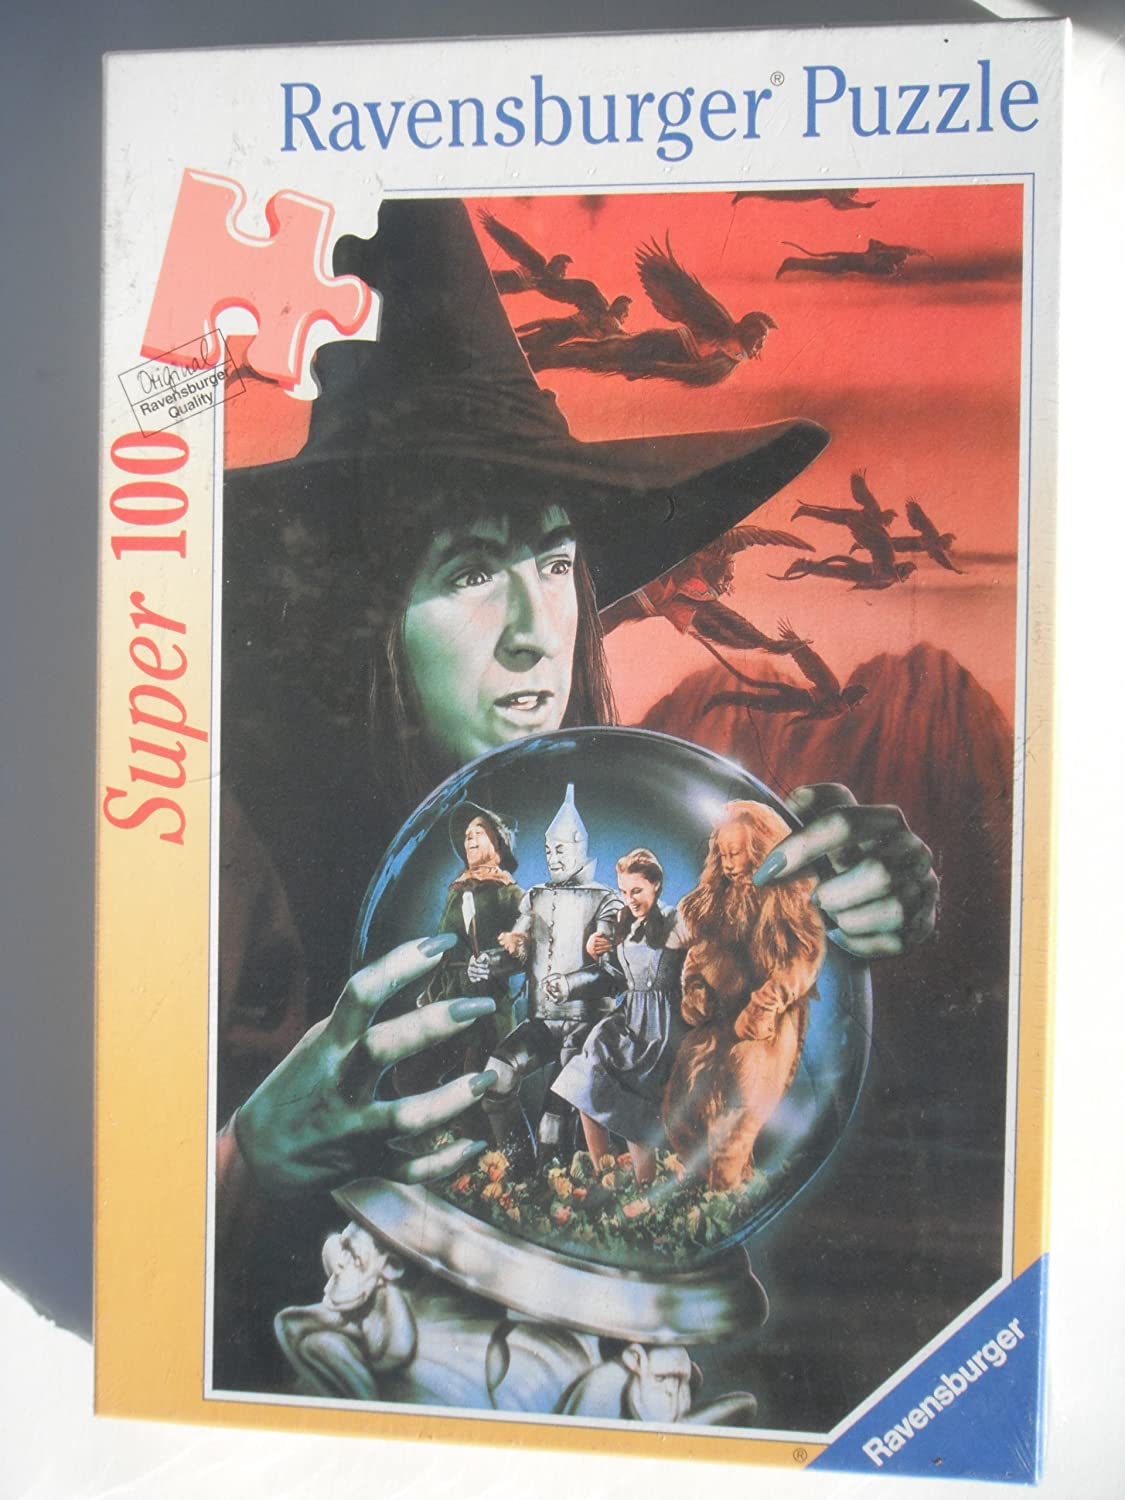 THE WICKED WITCH OF THE WEST: SUPER 100 PIECES RAVENSBURGER PUZZLE